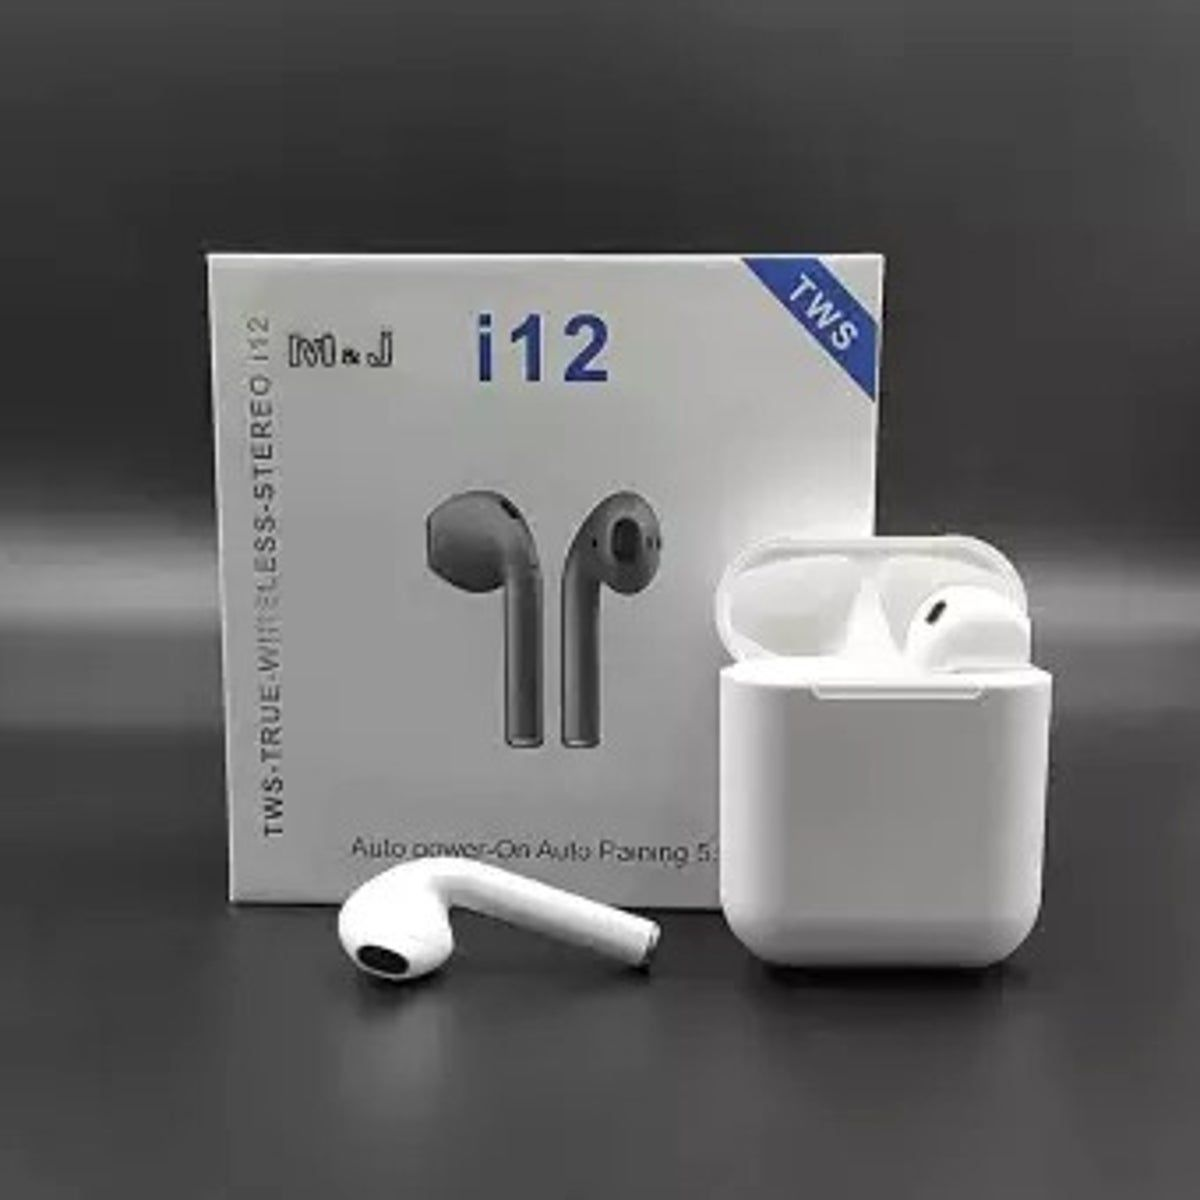 Tws I12 Airpods Bluetooth W White Case In 2021 Earbuds Wireless Earbuds Bluetooth